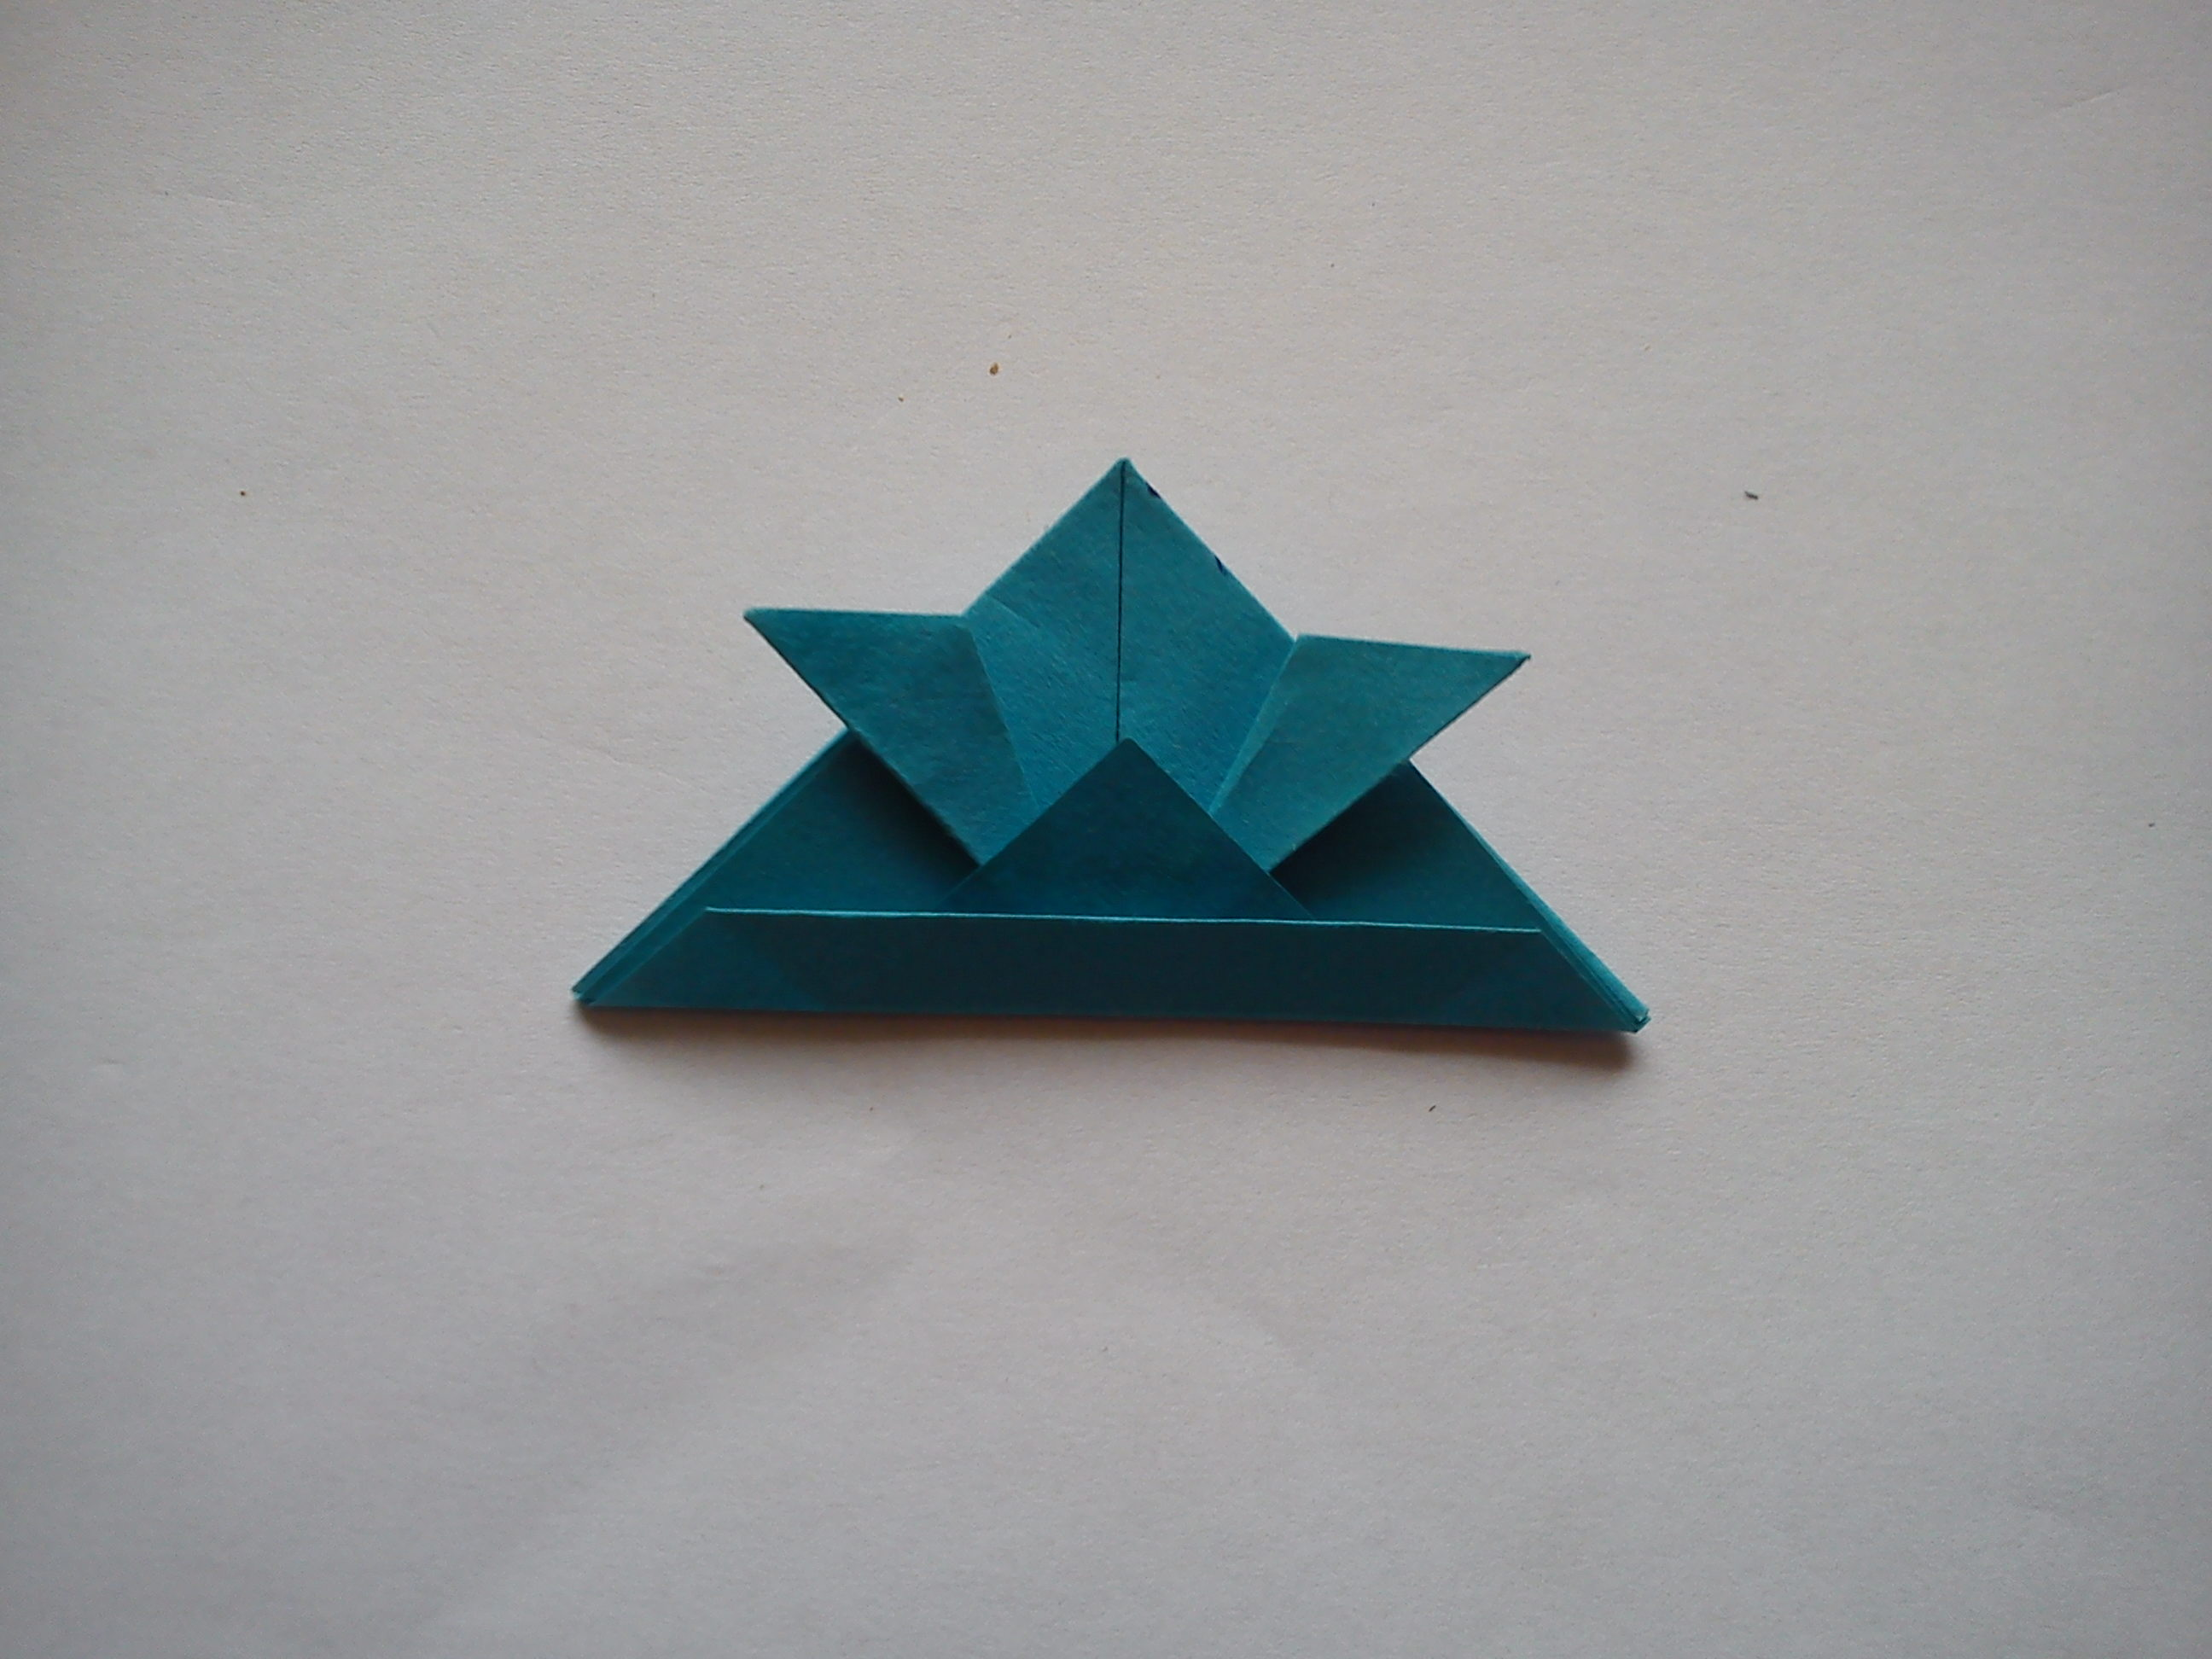 Arts & Crafts; Origami for Kids, Step by Step How to Make ... - photo#24